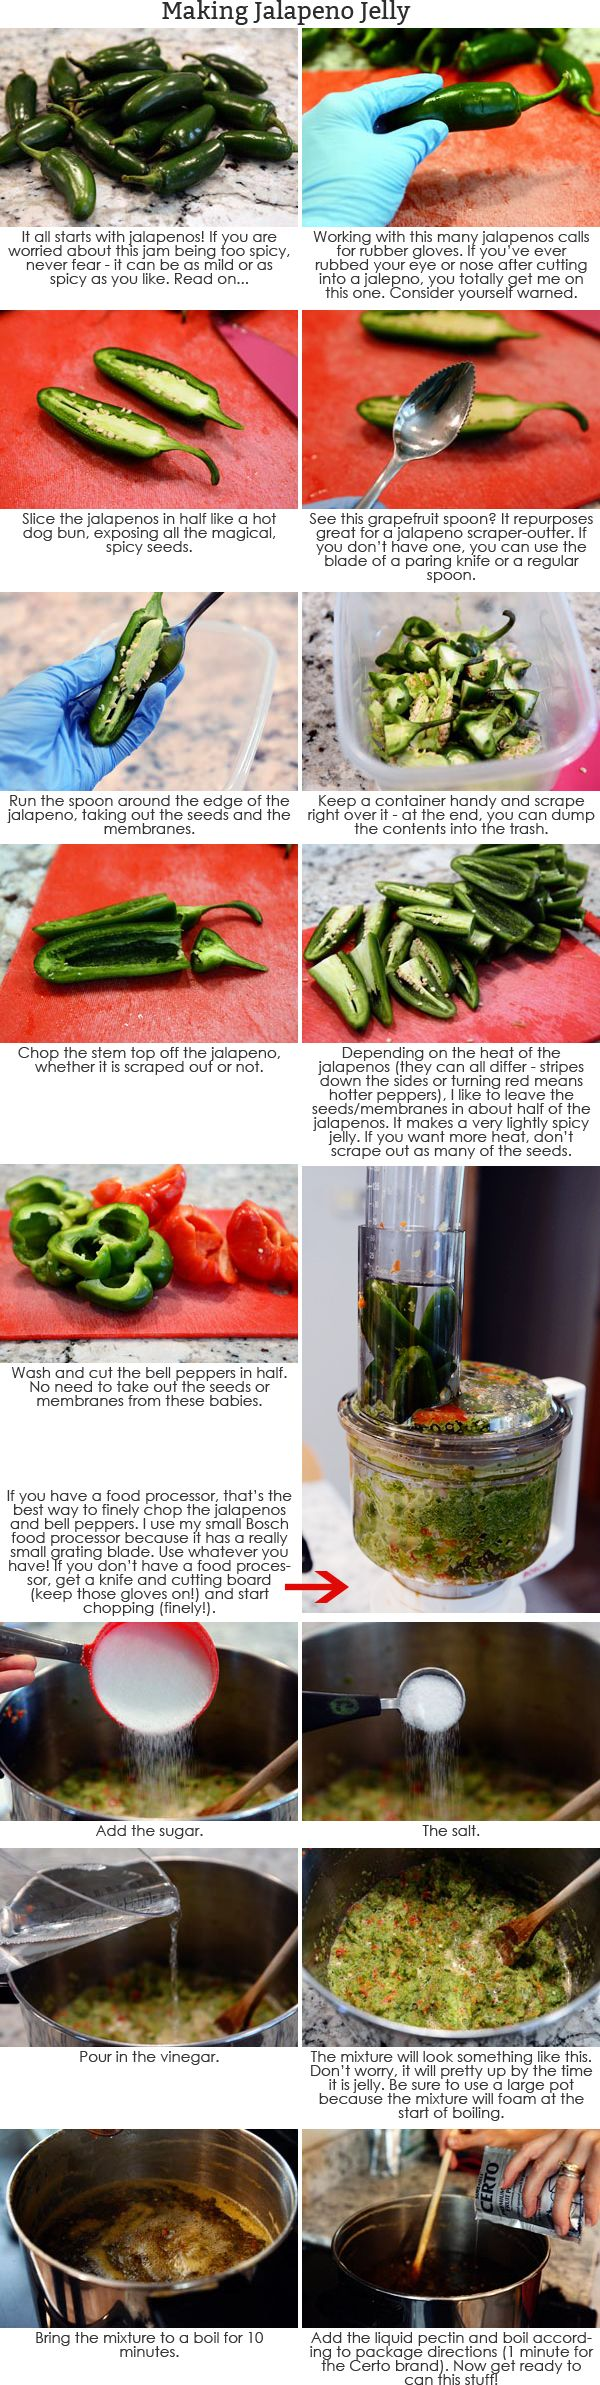 Jalapeno or Hot Pepper Jelly Canning Tutorial | Mel's Kitchen Cafe